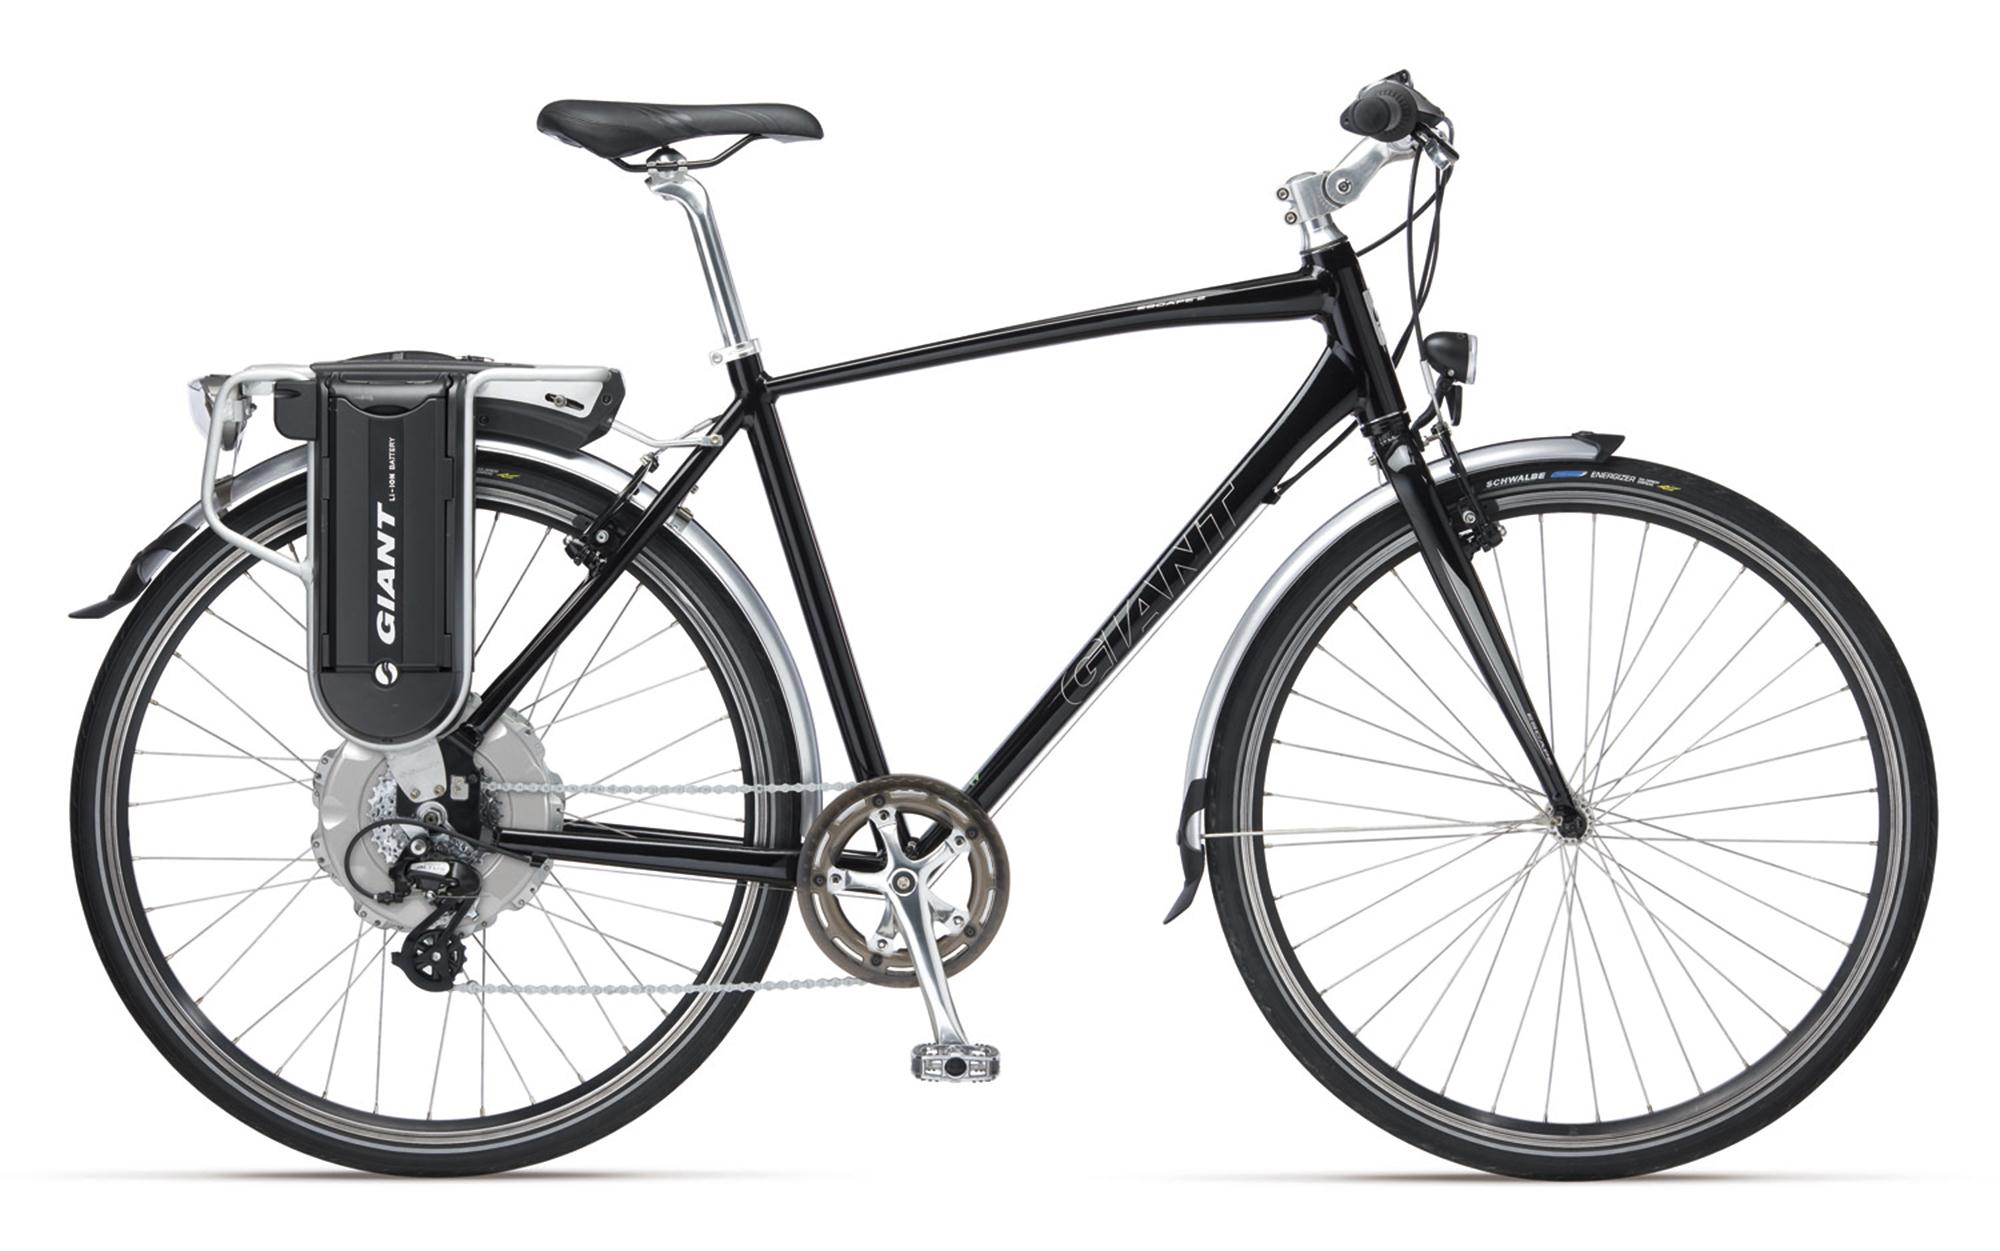 Giant Escape Hybrid 2 Electric Bicycle H2 Gear